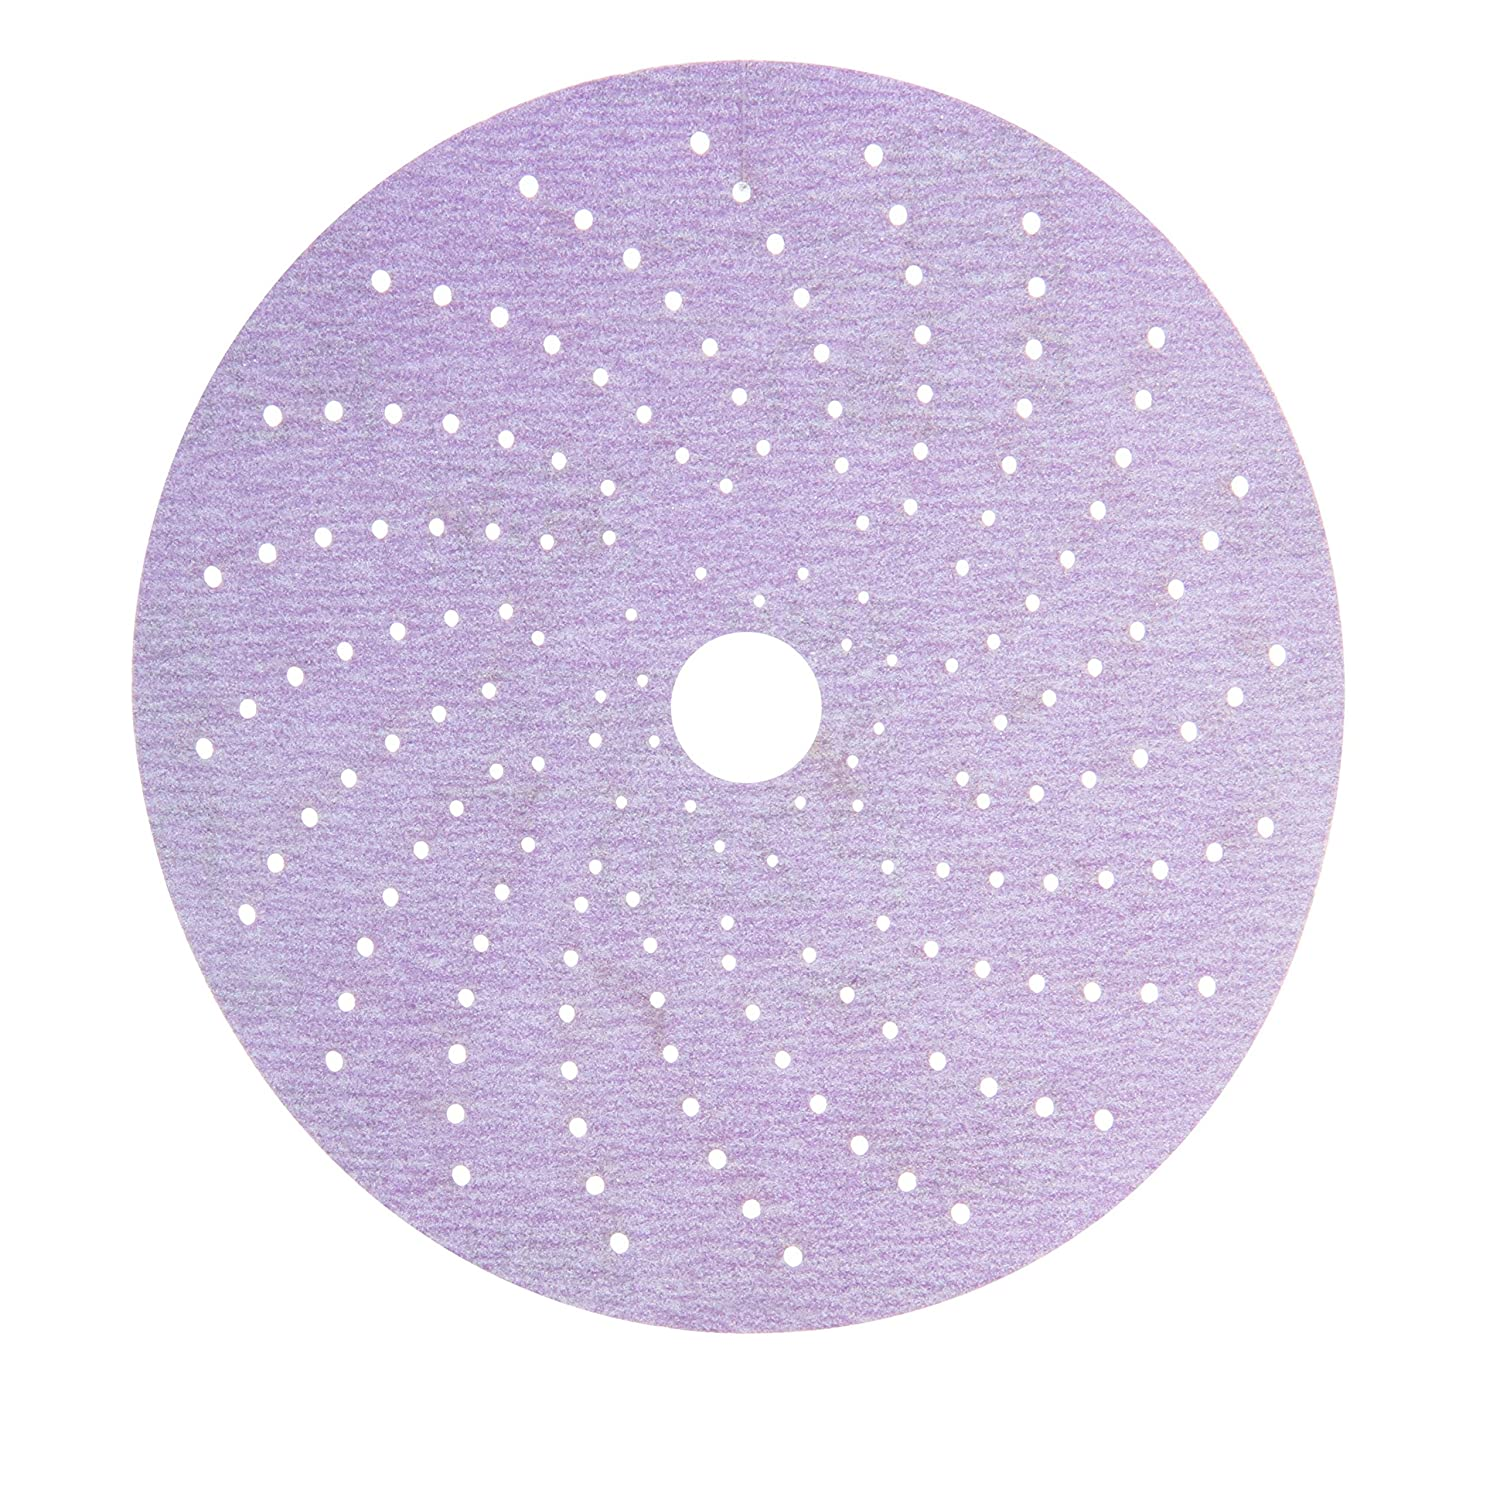 3M 01813 Hookit Purple 6 P280C Grit 334U Clean Sanding Disc